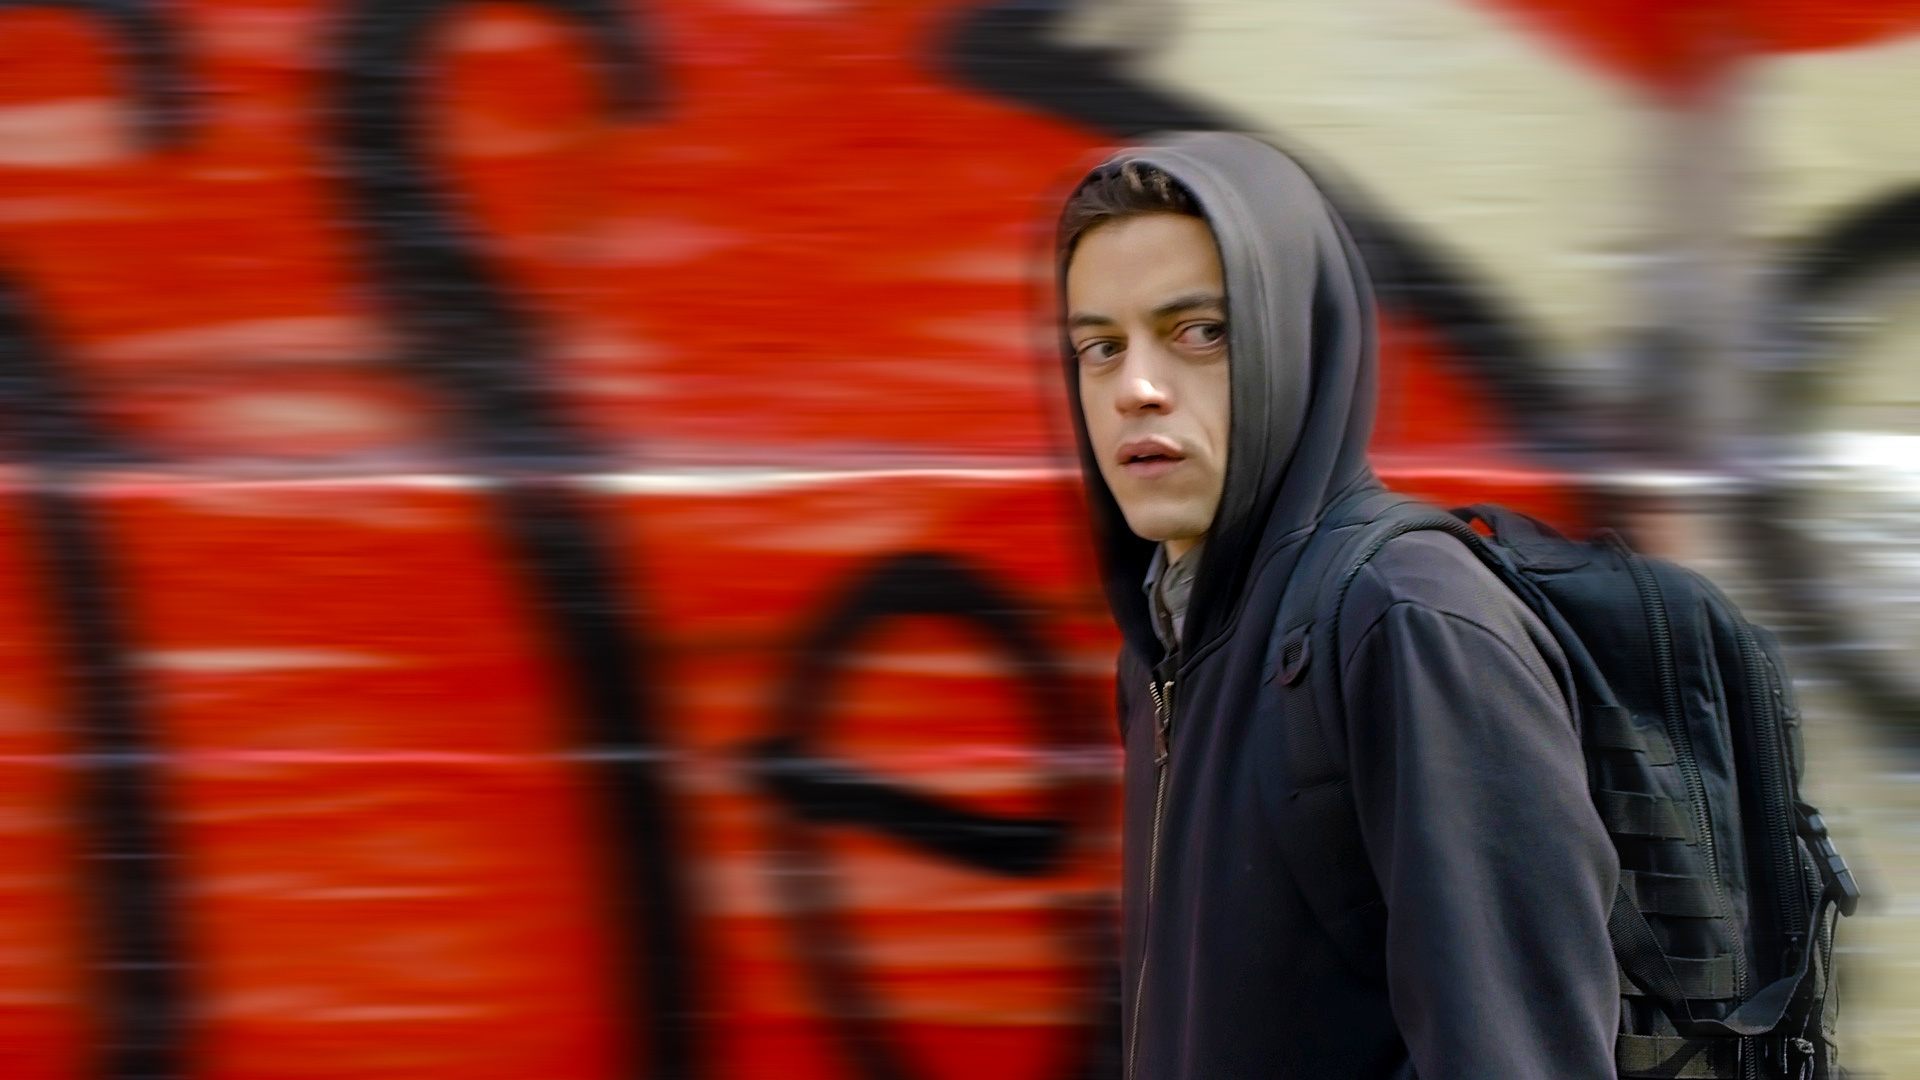 See Mr Robot 2015 online and download 1920x1080